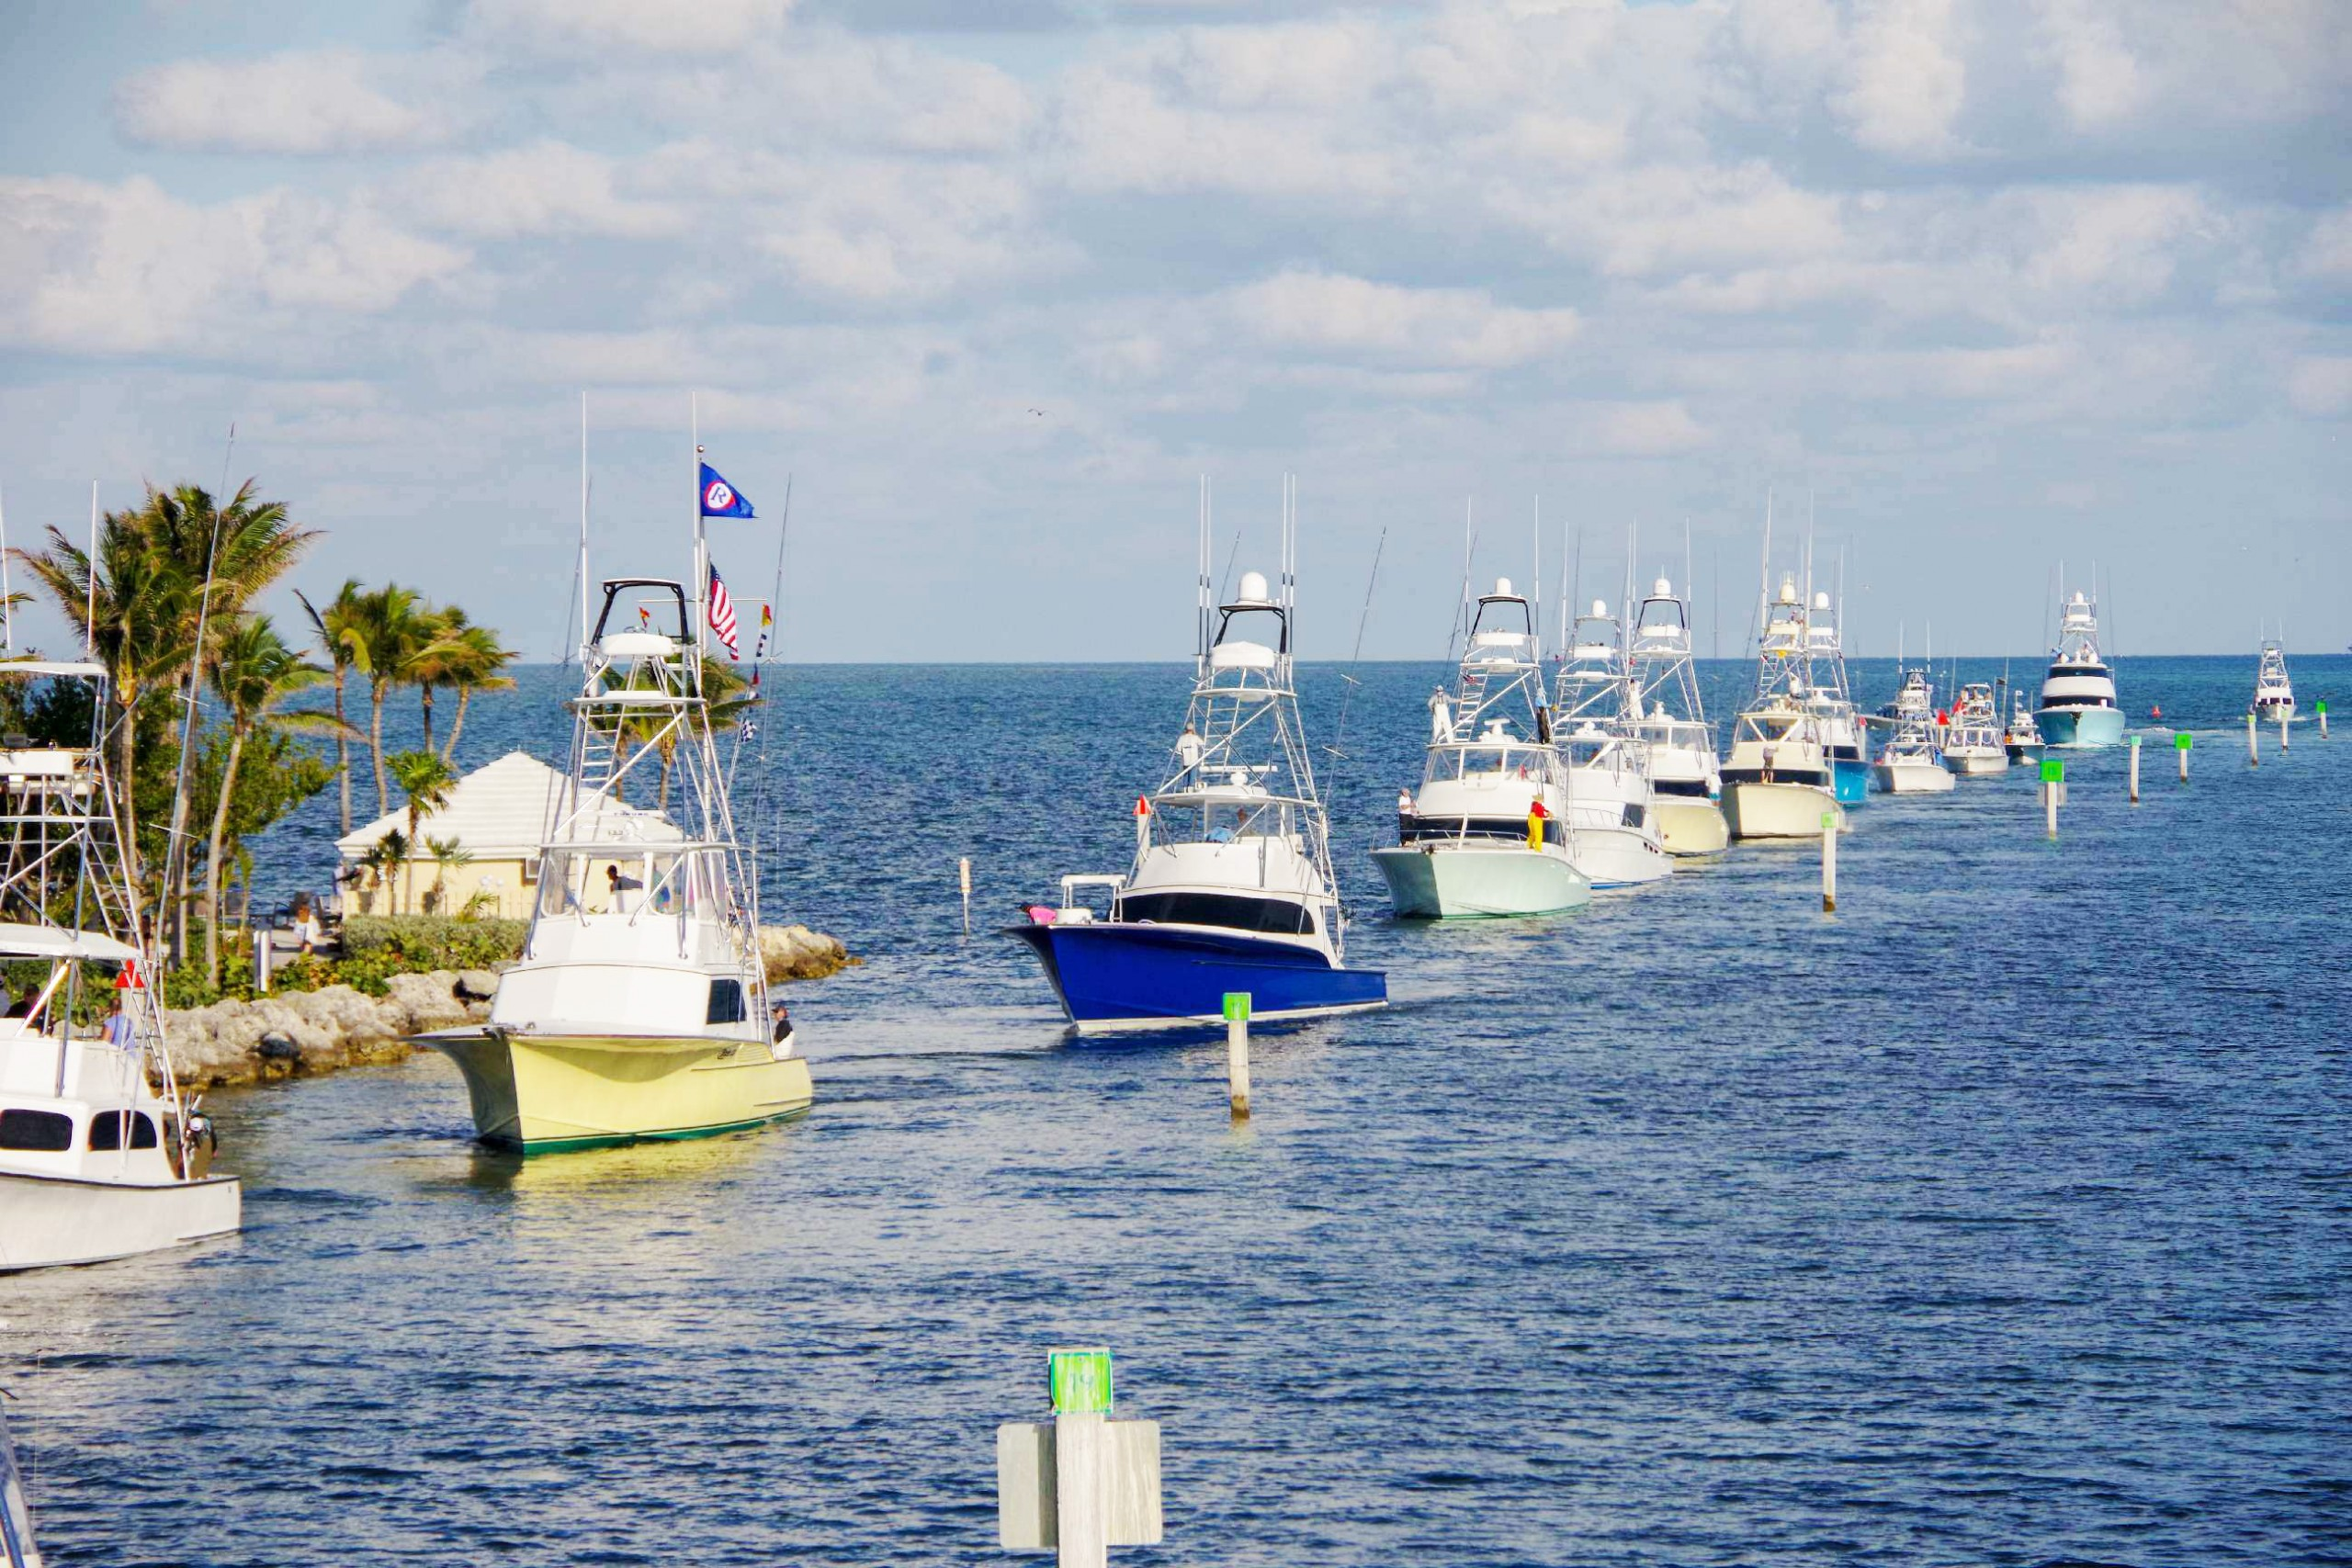 Jimmy Johnson Expanding His $1 Million Guaranteed Purse Fishing Tournament to Atlantic City, NJ